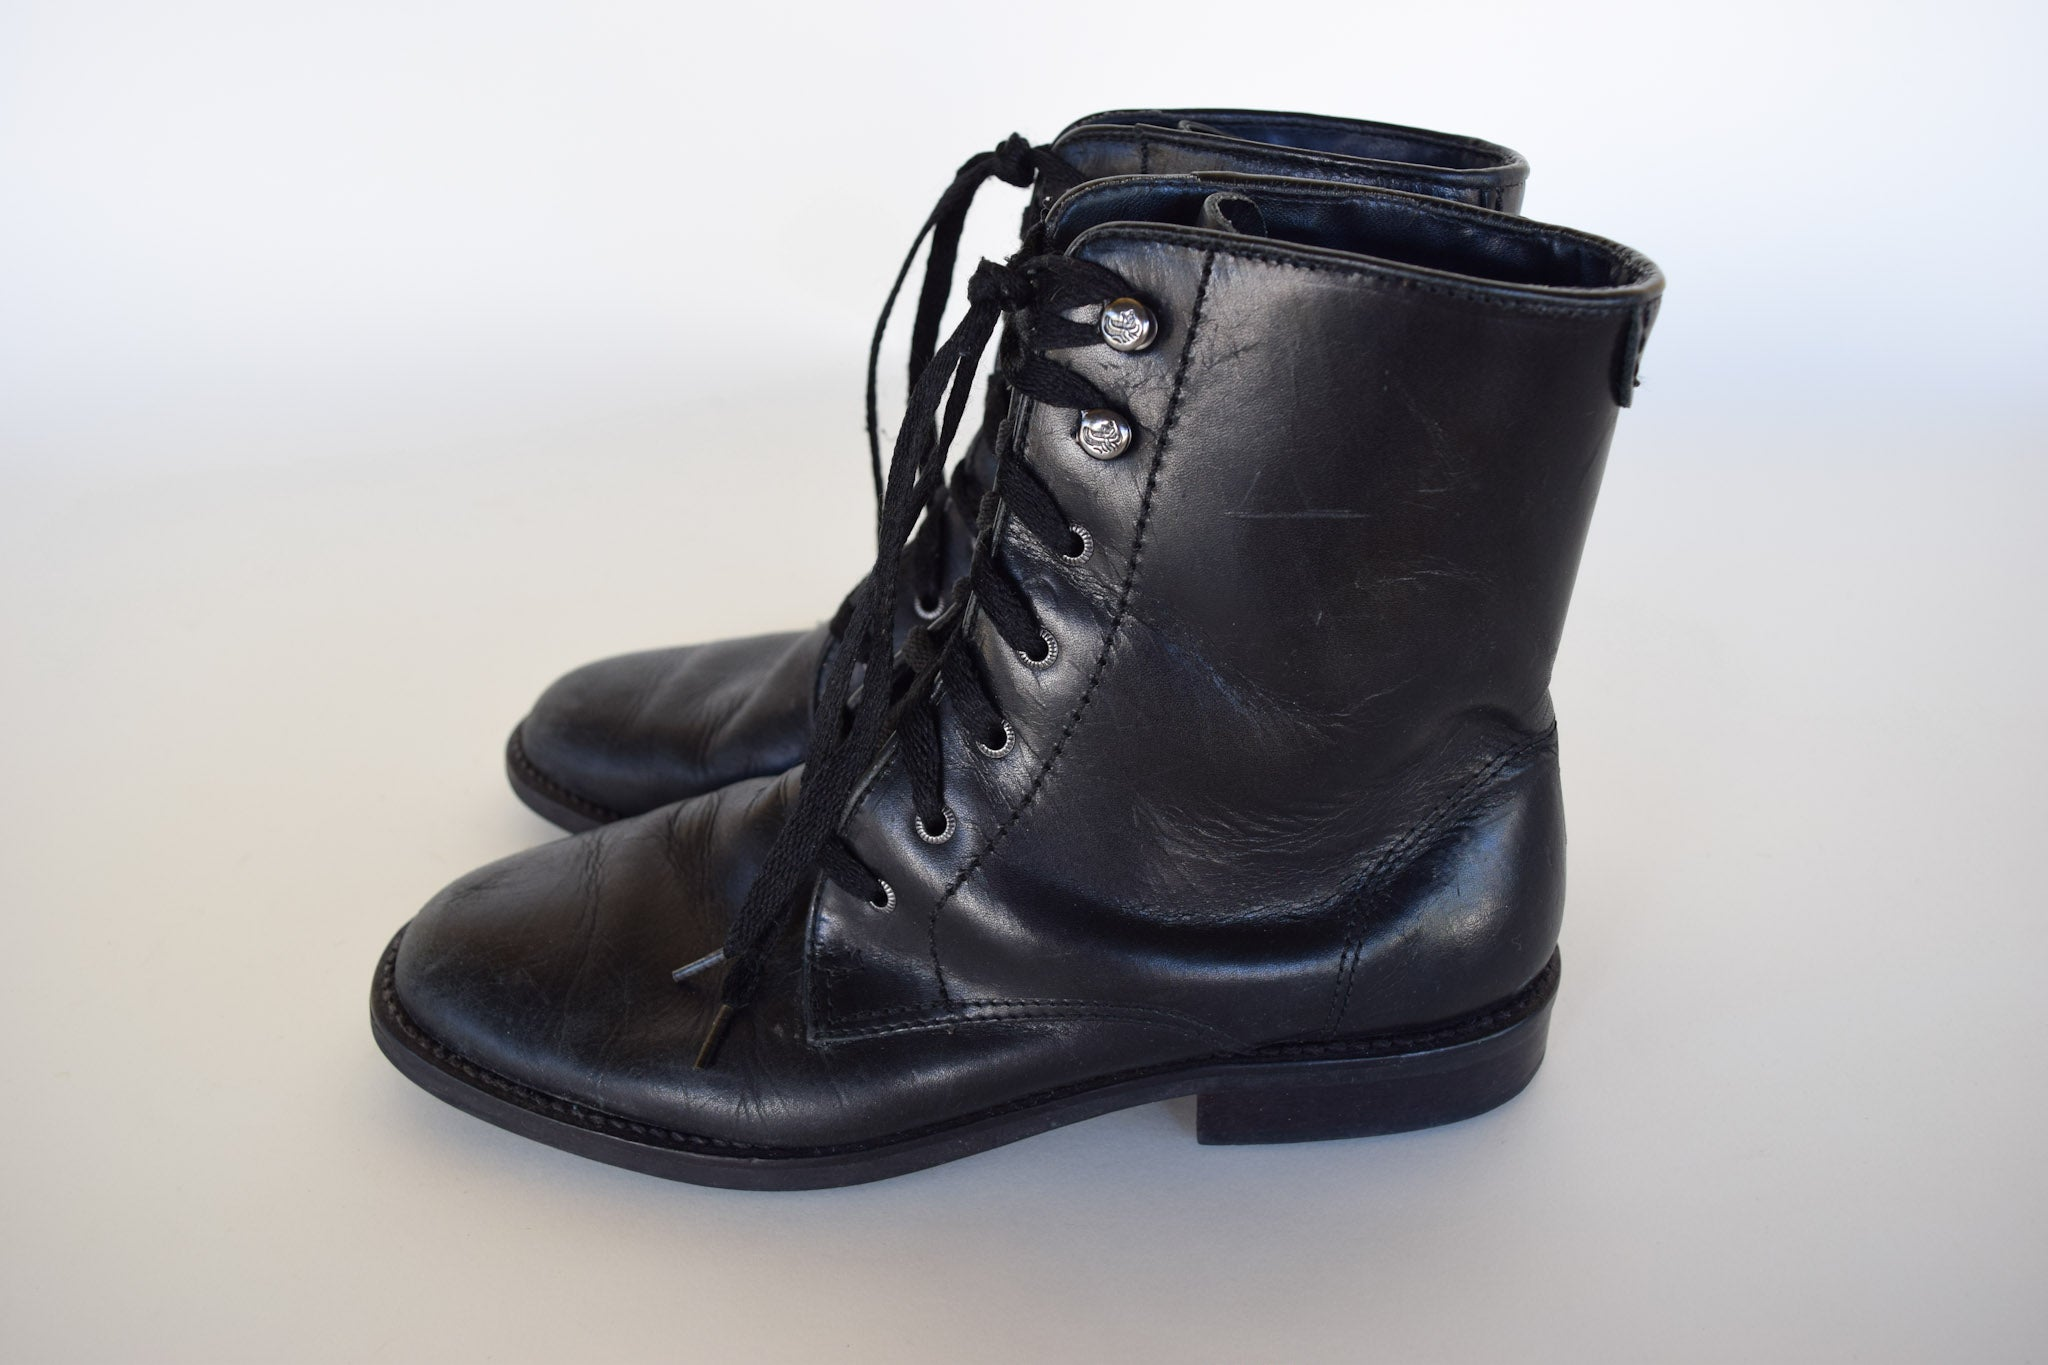 Bass & Co. Leather Boots